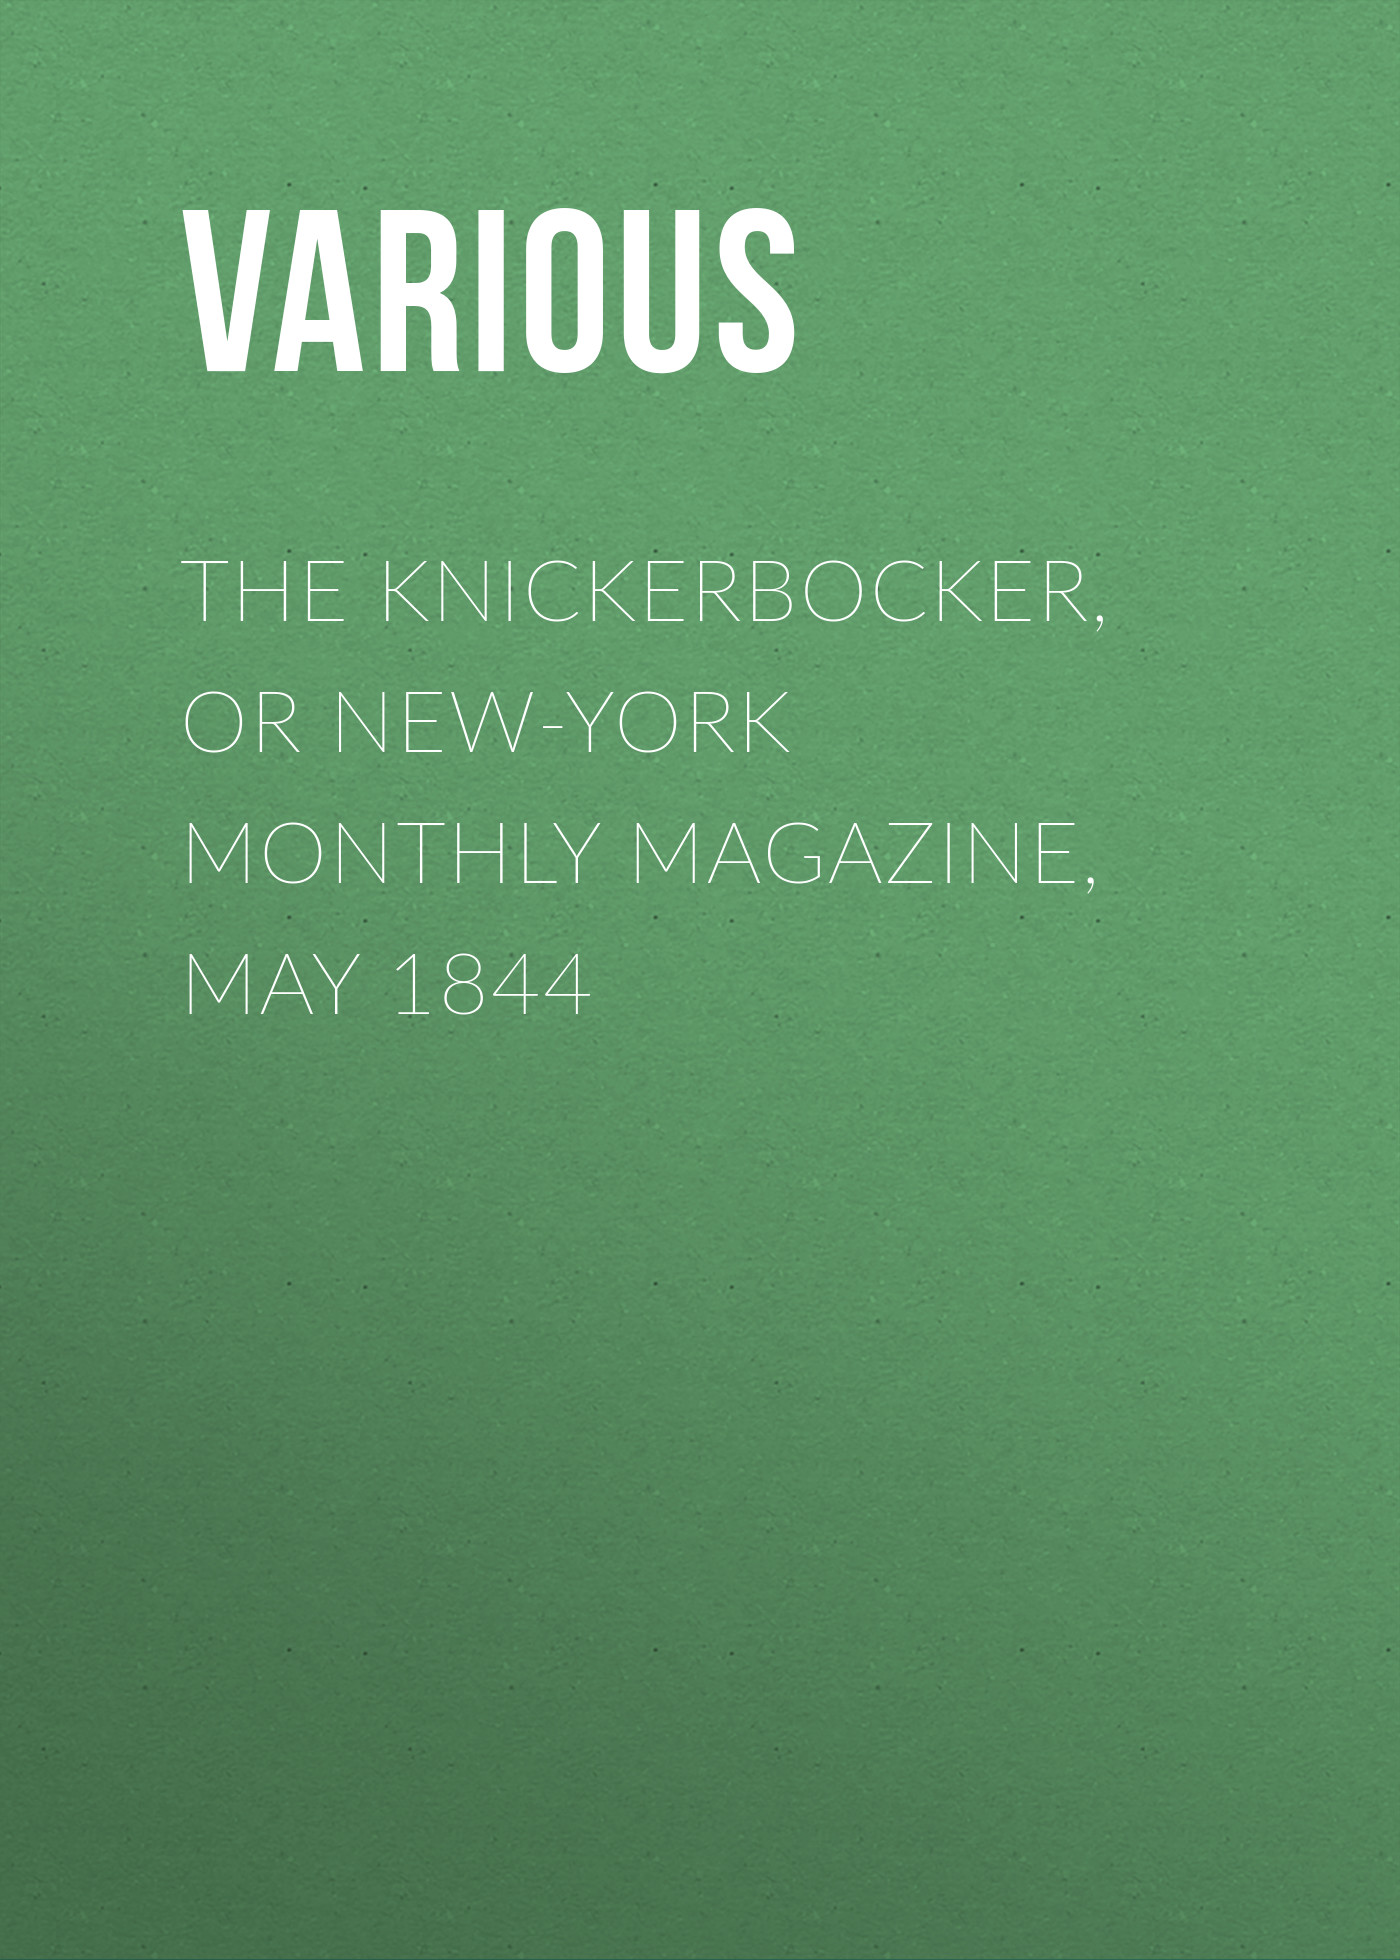 Various The Knickerbocker, or New-York Monthly Magazine, May 1844